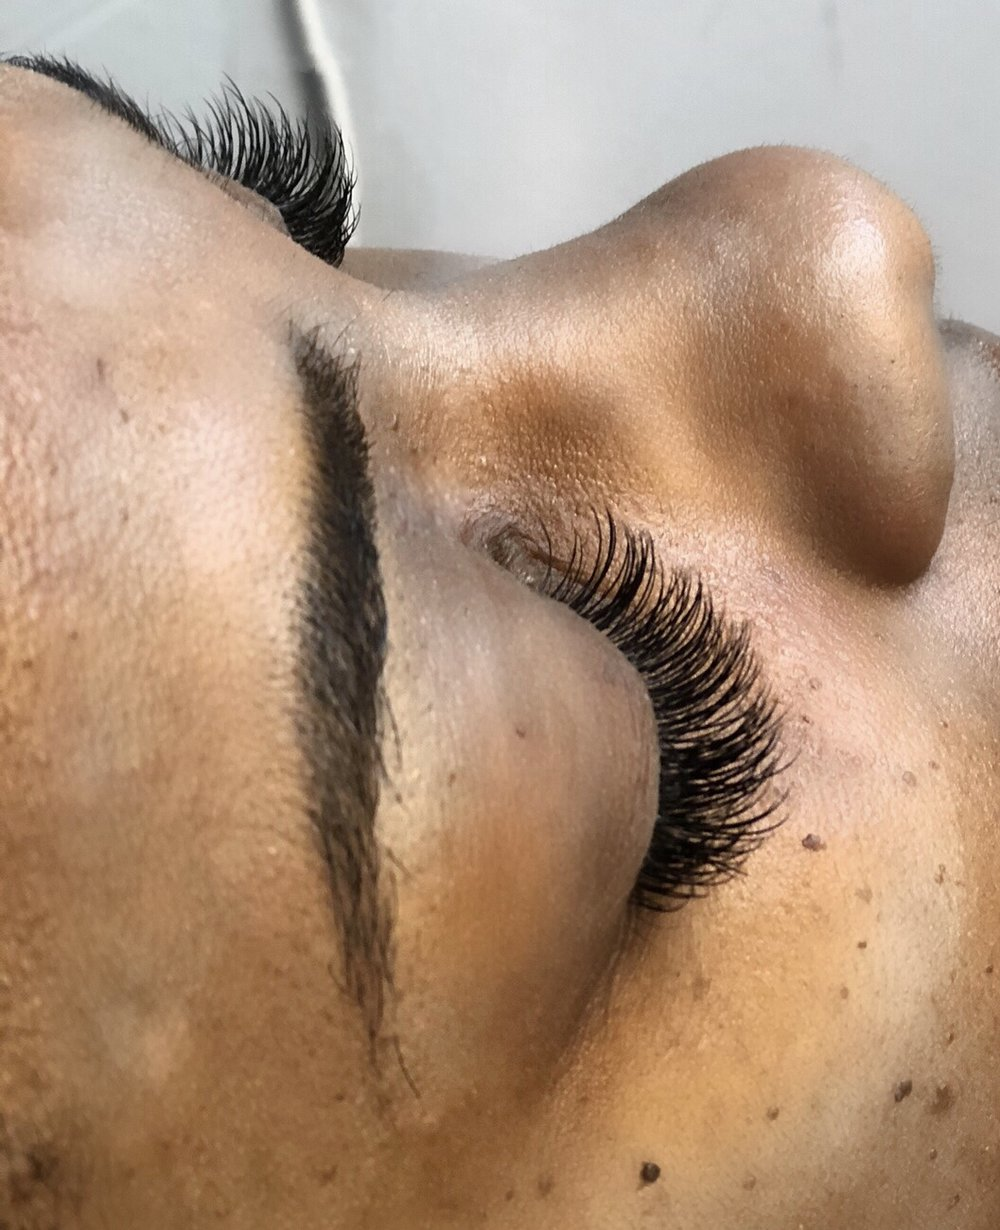 Lashes & Waxing - Lash Extensions, Lash Tinting, WaxingBook Here